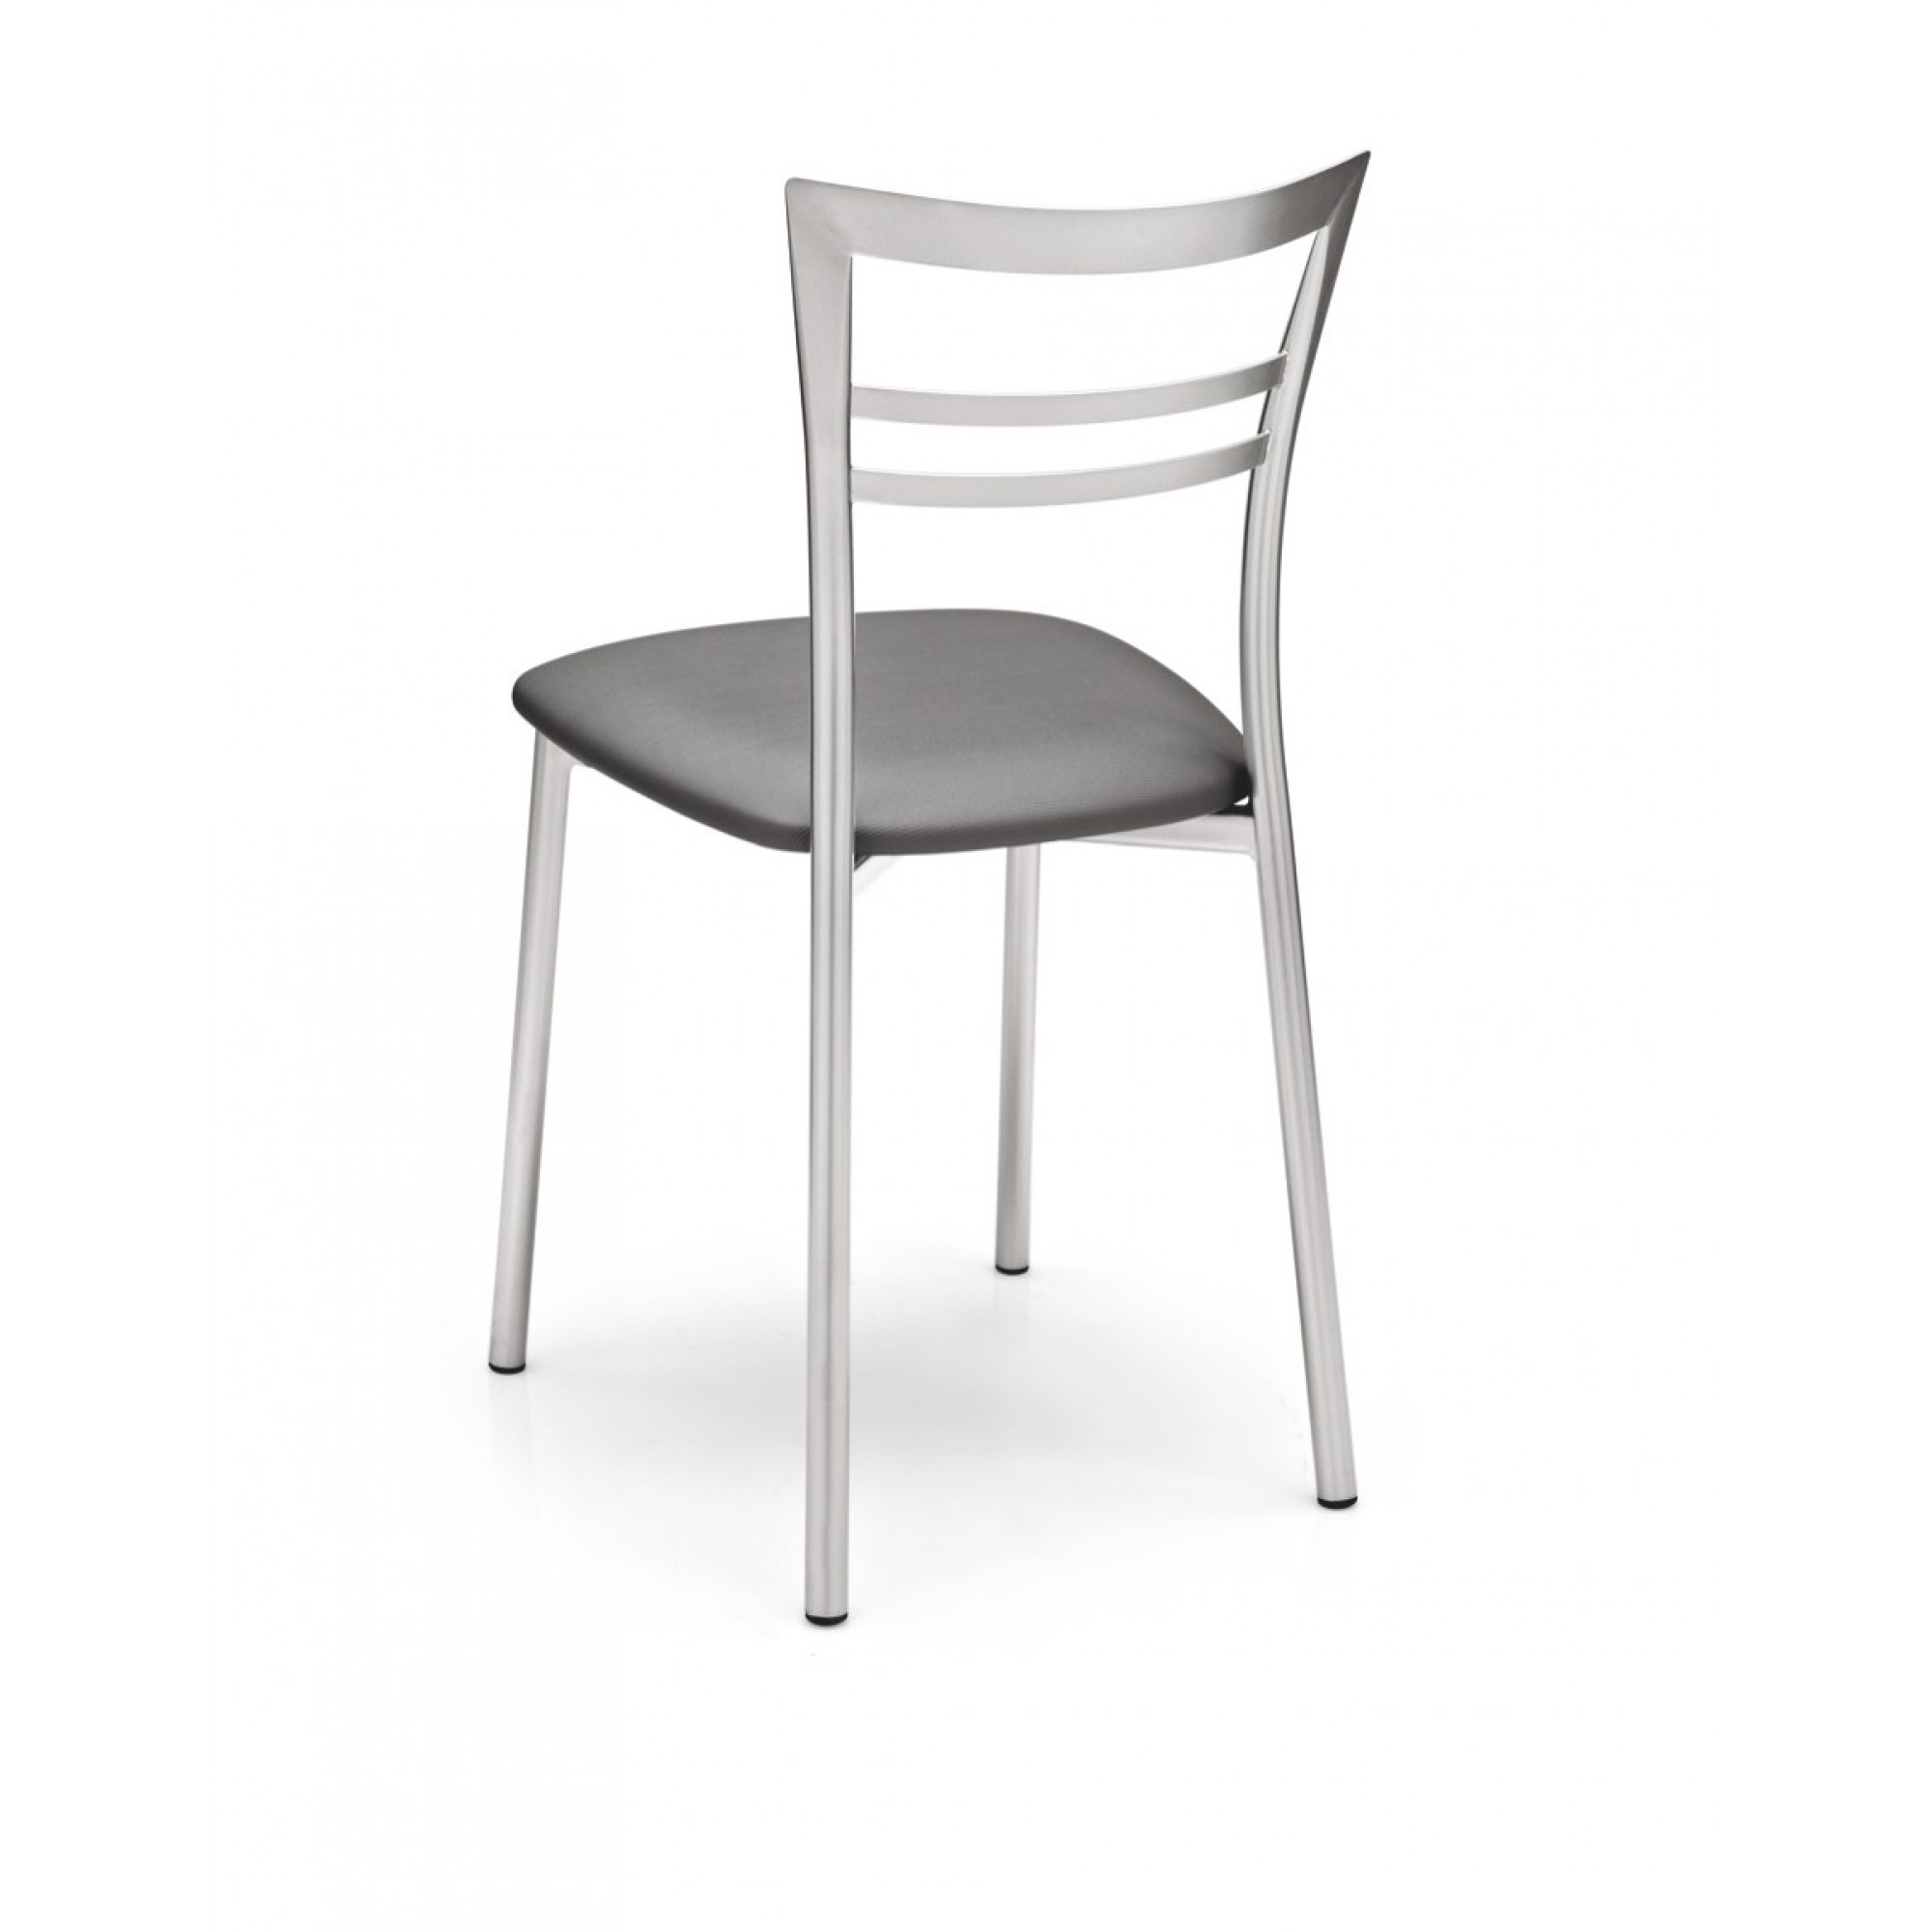 Go Chairs Seats Connubia By Calligaris Masonionline - Sedie Calligaris Negozio